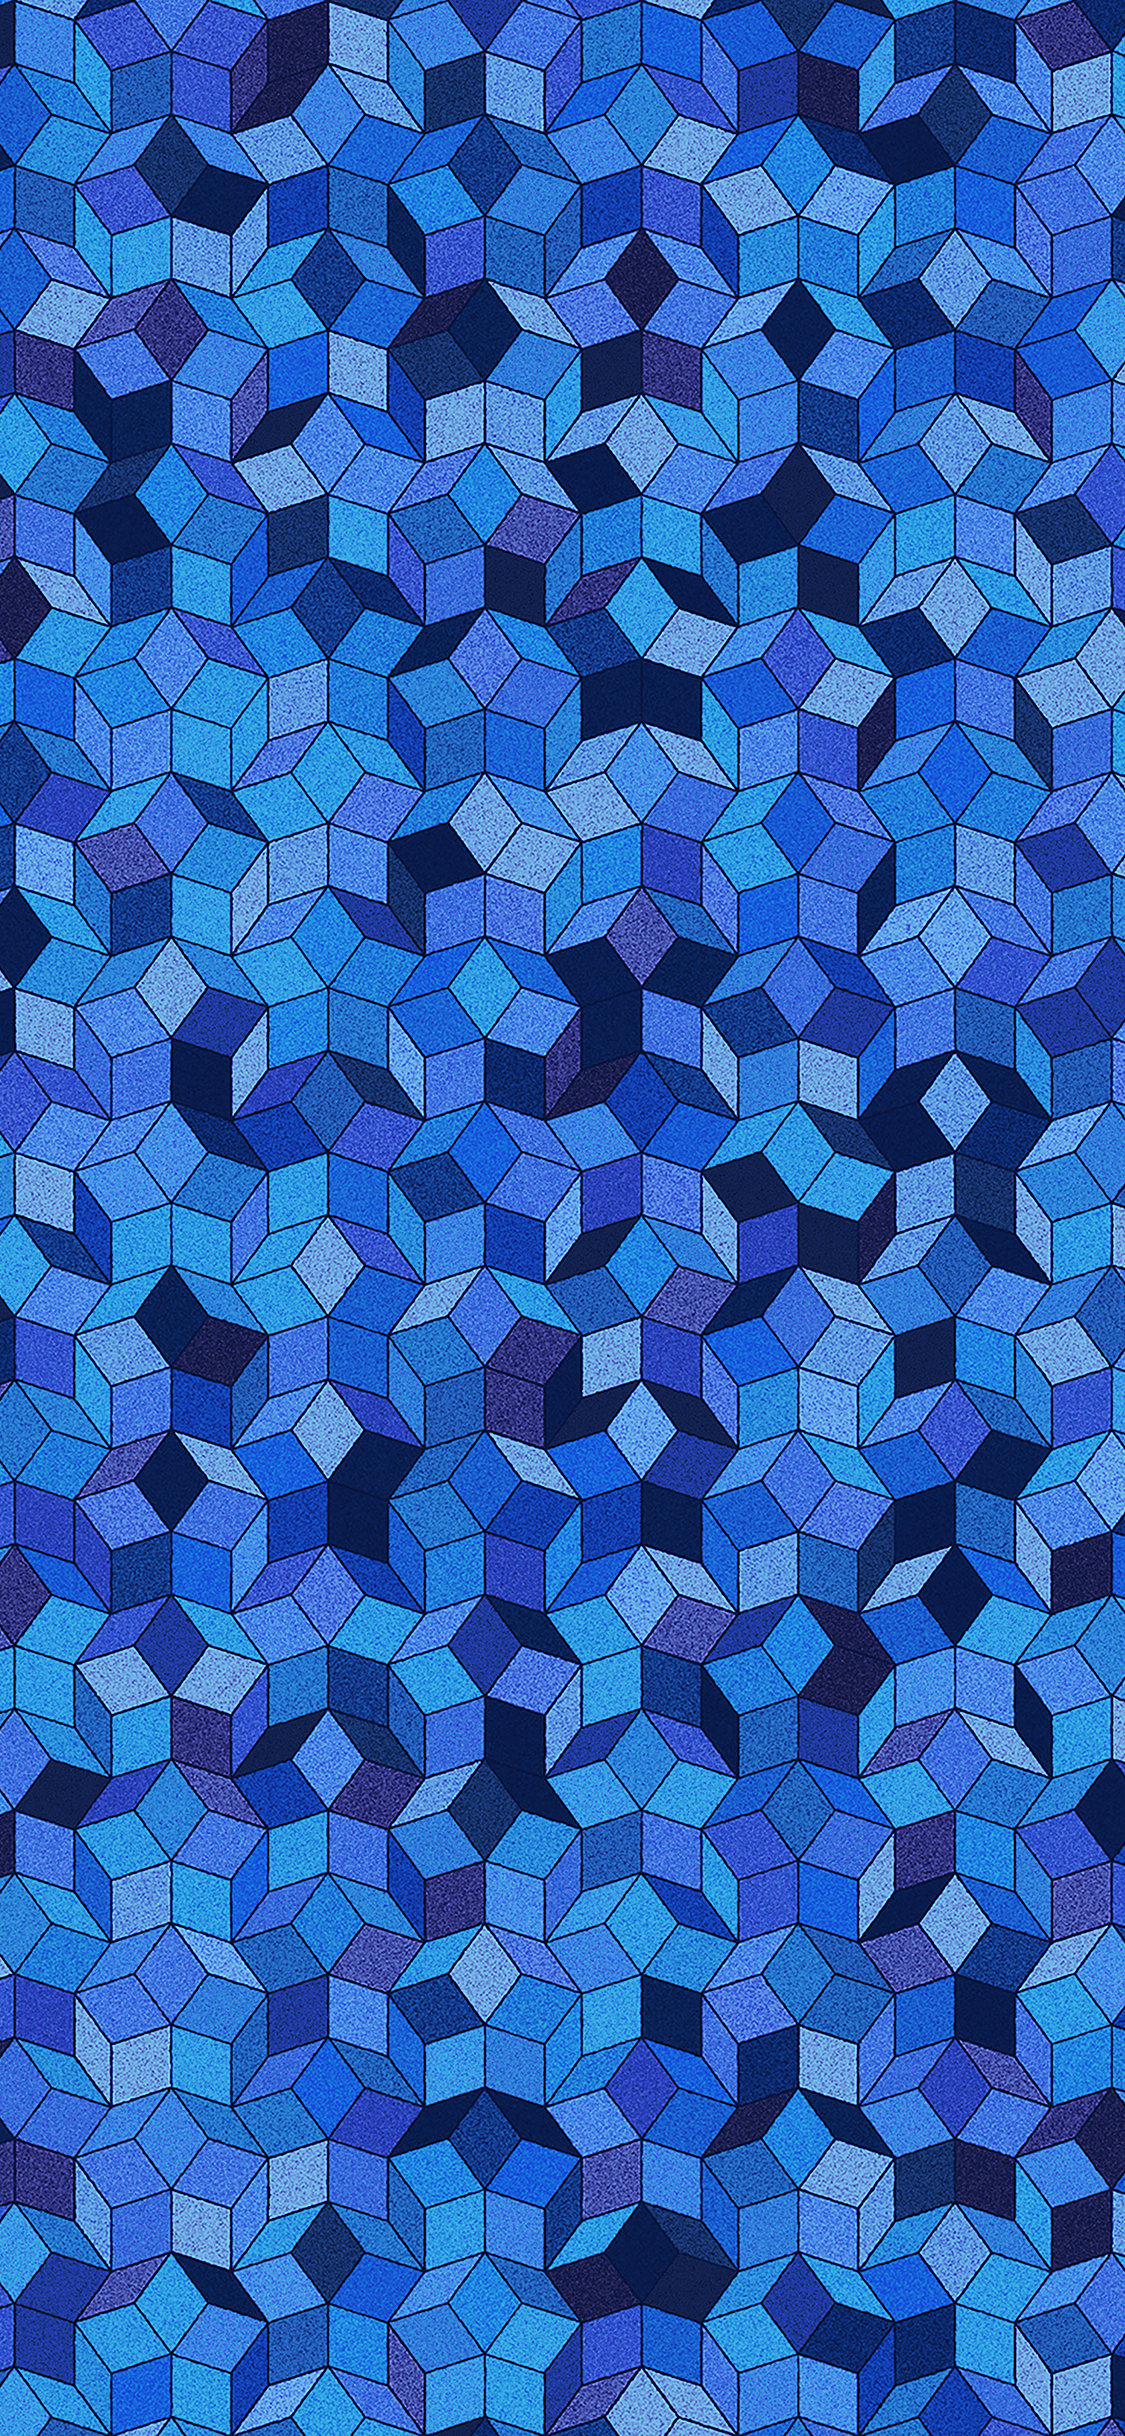 iPhoneXpapers.com-Apple-iPhone-wallpaper-vb19-wallpaper-penrose-blue-simon-cpage-pattern